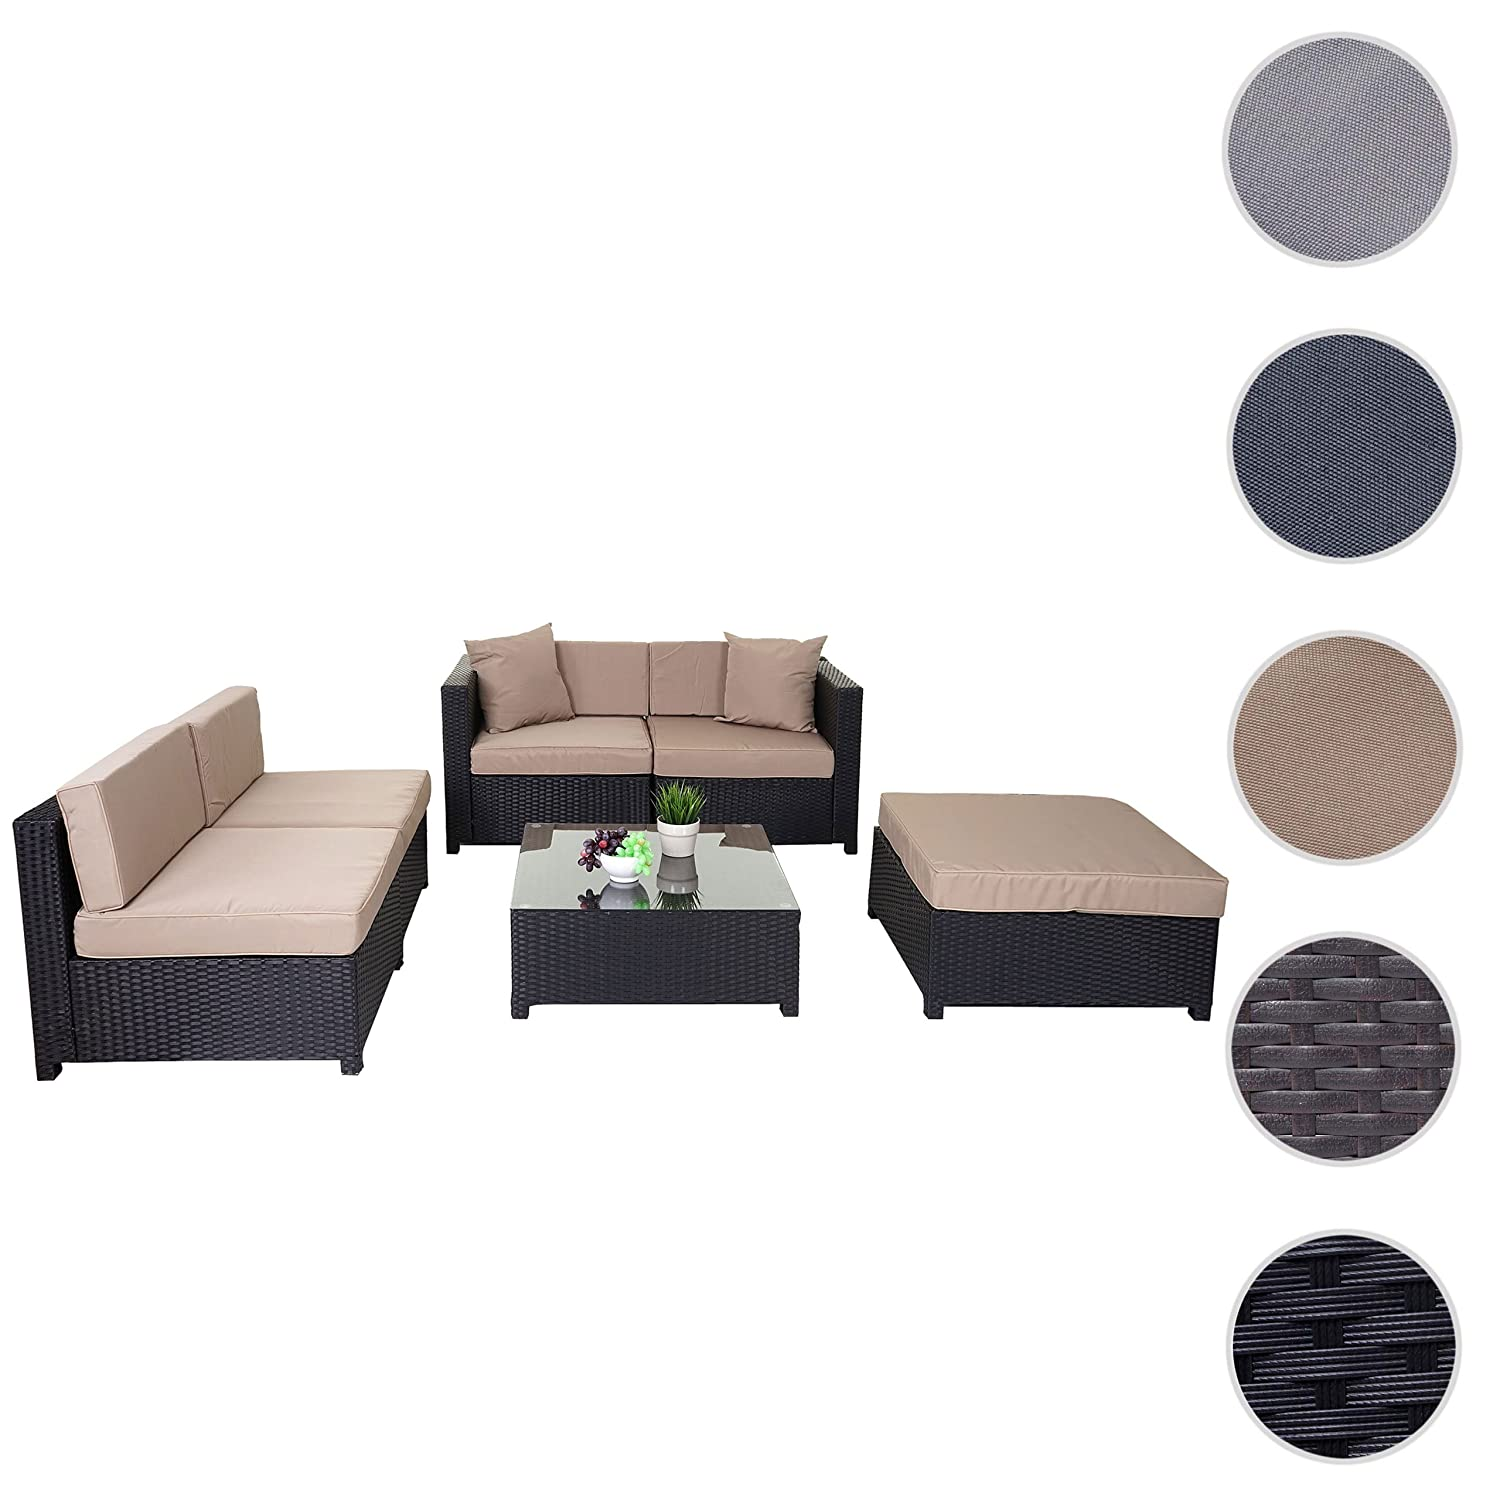 poly rattan garnitur tapa gartengarnitur sitzgruppe lounge set alu anthrazit kissen beige. Black Bedroom Furniture Sets. Home Design Ideas